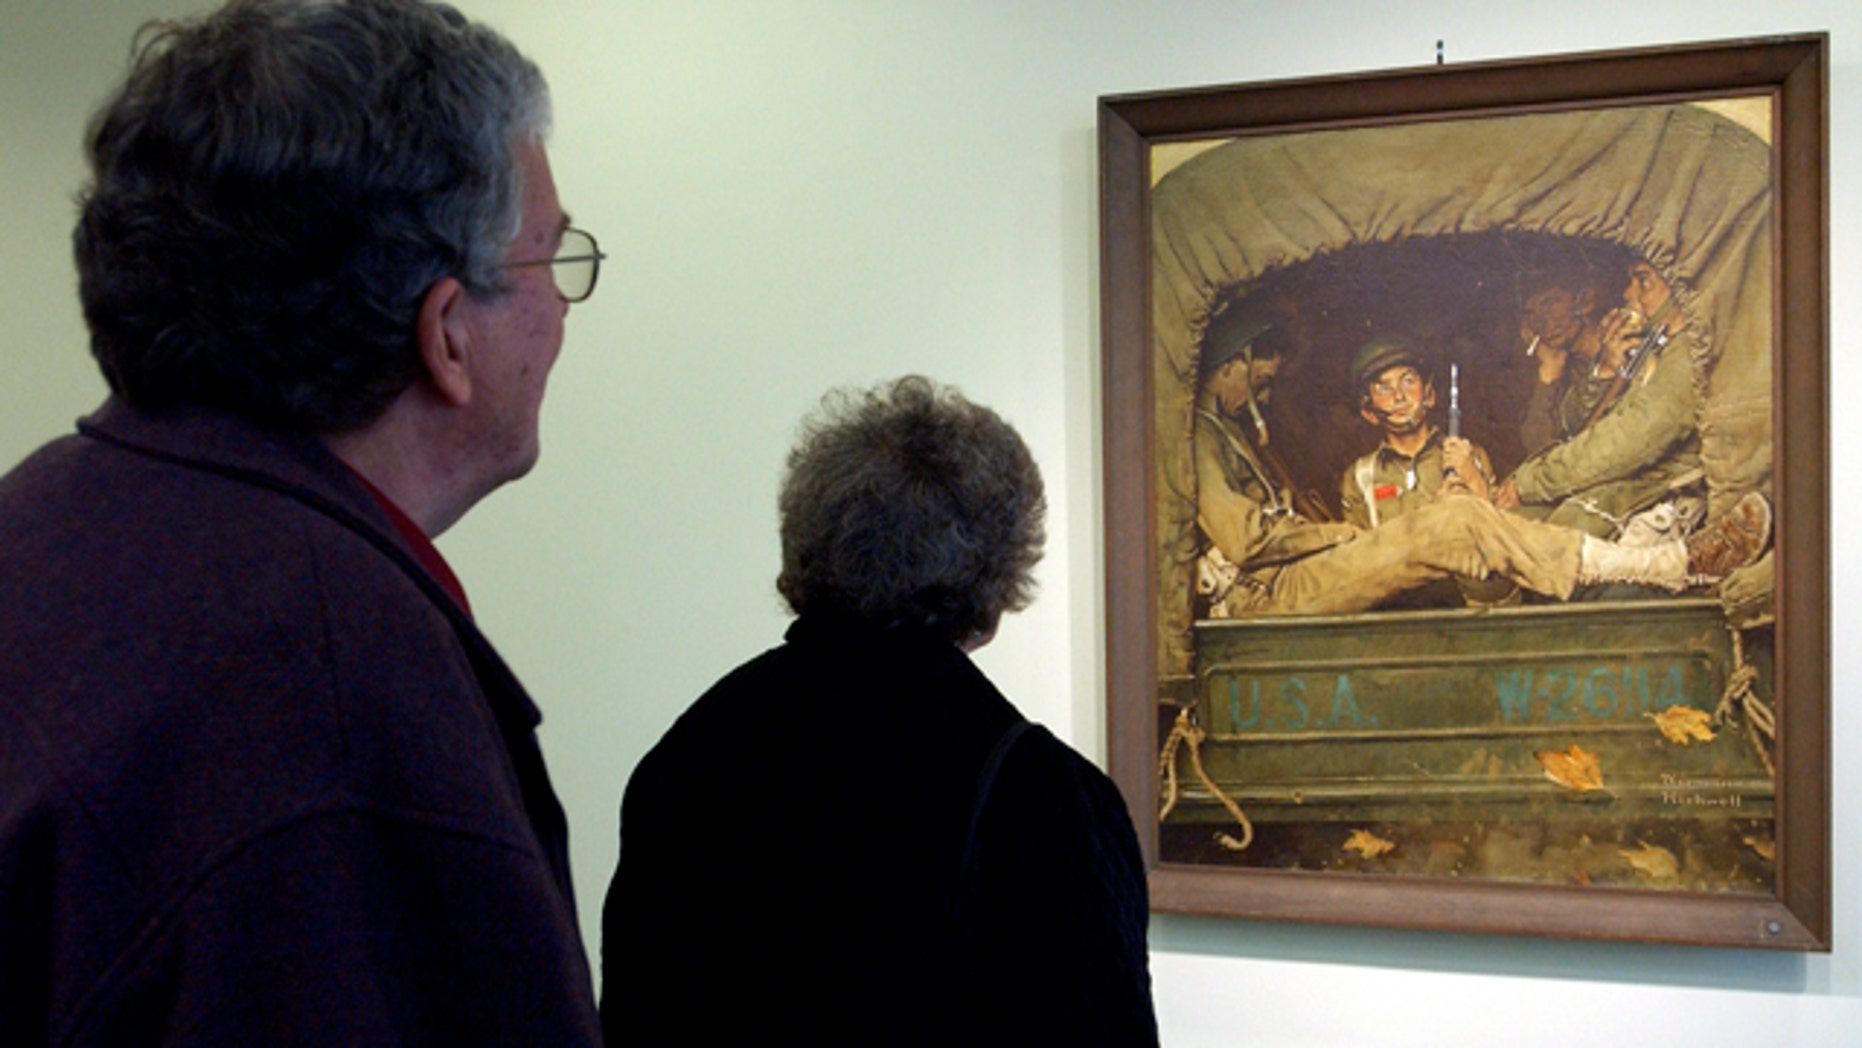 May 22, 2005: This May 22, 2005 photo shows the the restored Norman Rockwell illustration 'Willie Gillis In Convoy' on display at the Levi Heywood Memorial Library in Gardner, Mass.  (AP Photo/Worcester Telegram & Gazette, Rick Cinclair)